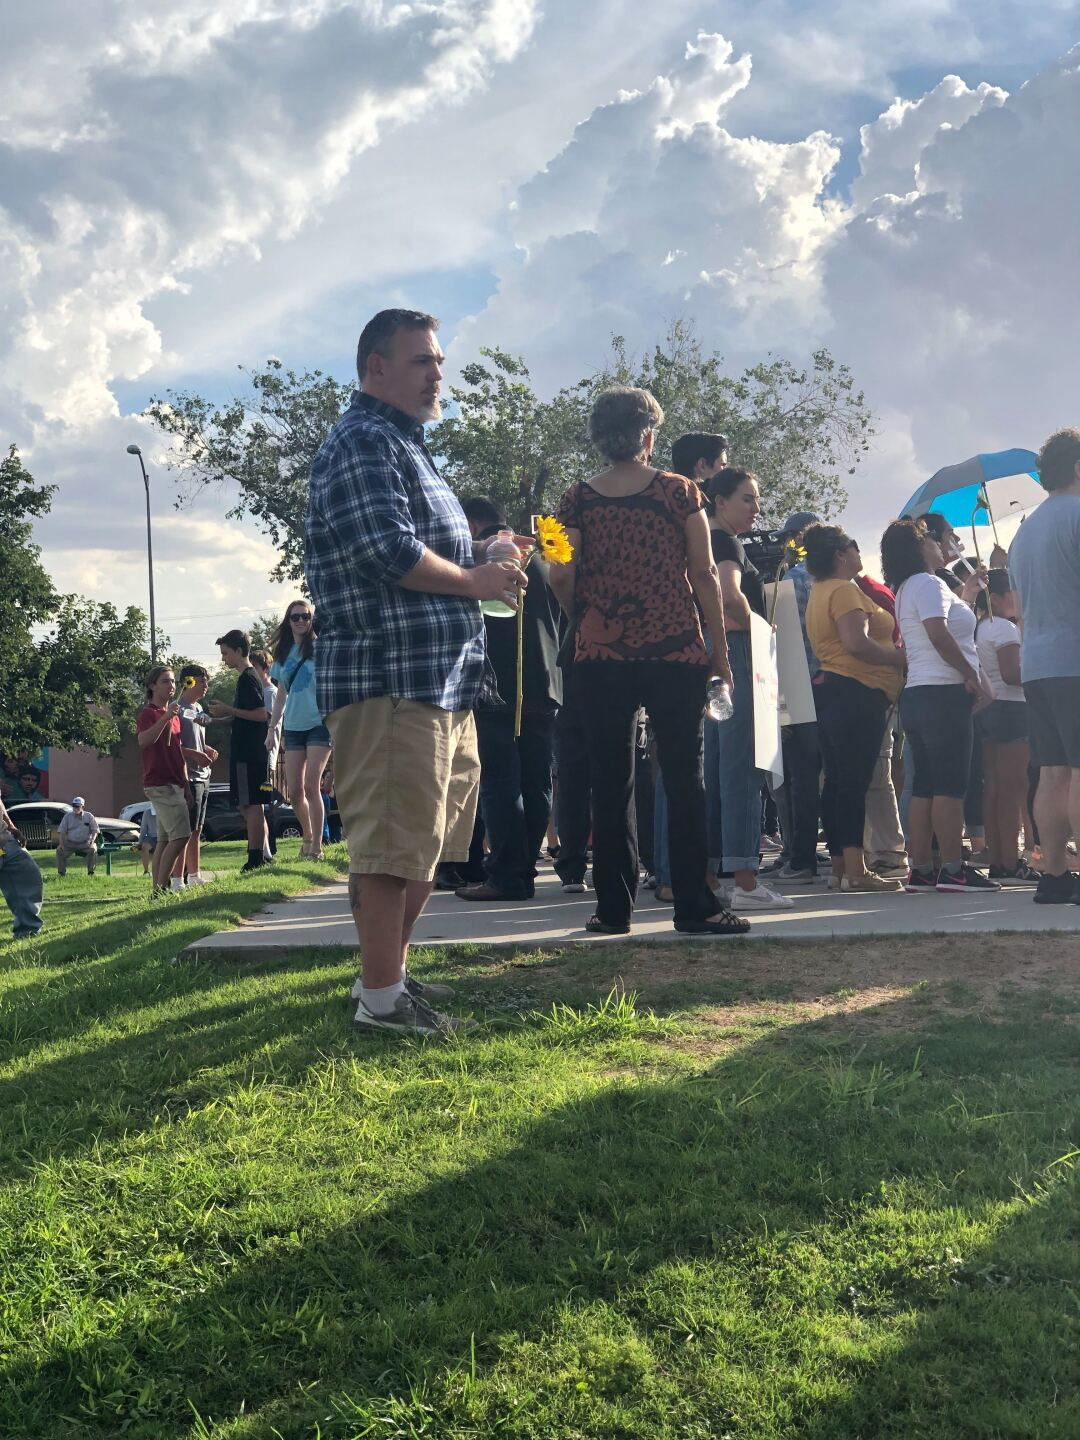 Photos: El Paso mourns after 20 people killed in mass shooting